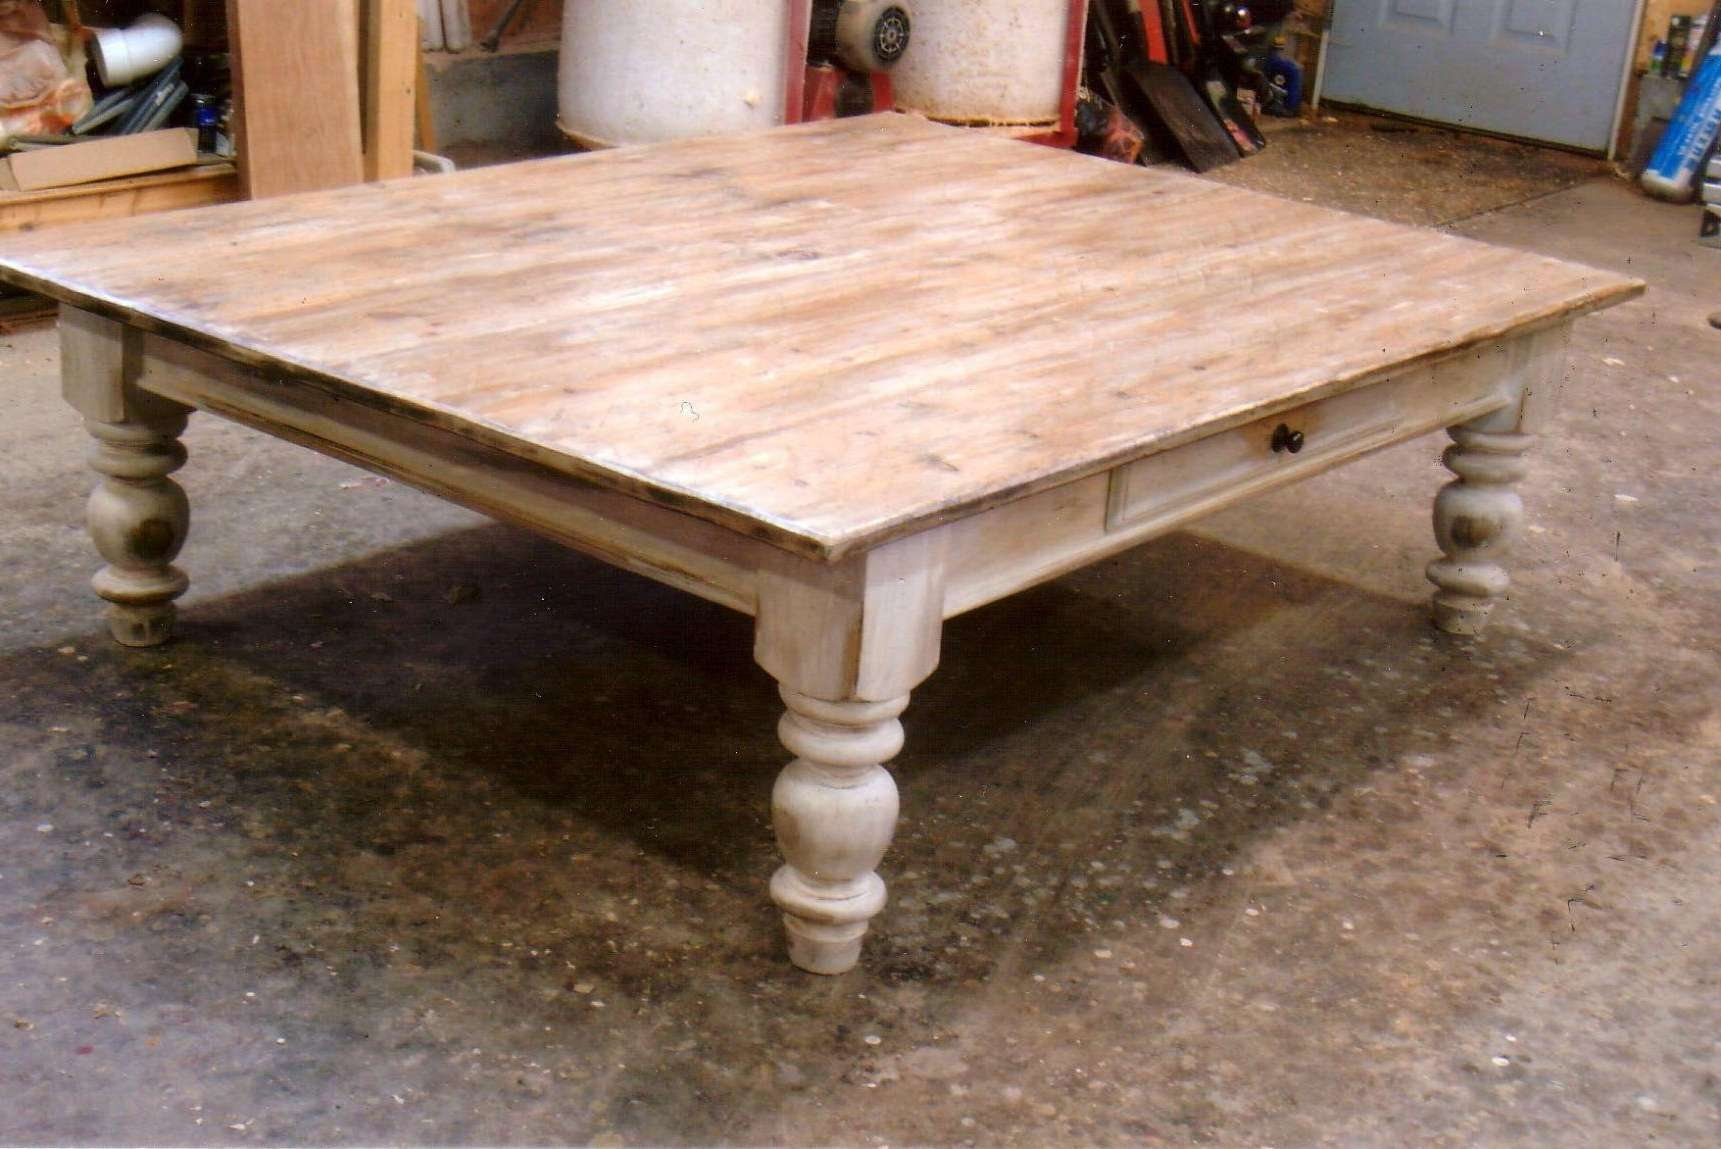 Fashionable Antique Rustic Coffee Tables Regarding Antique Farmhouse Coffee Table : Bed And Shower – Rustic Farmhouse (View 8 of 20)